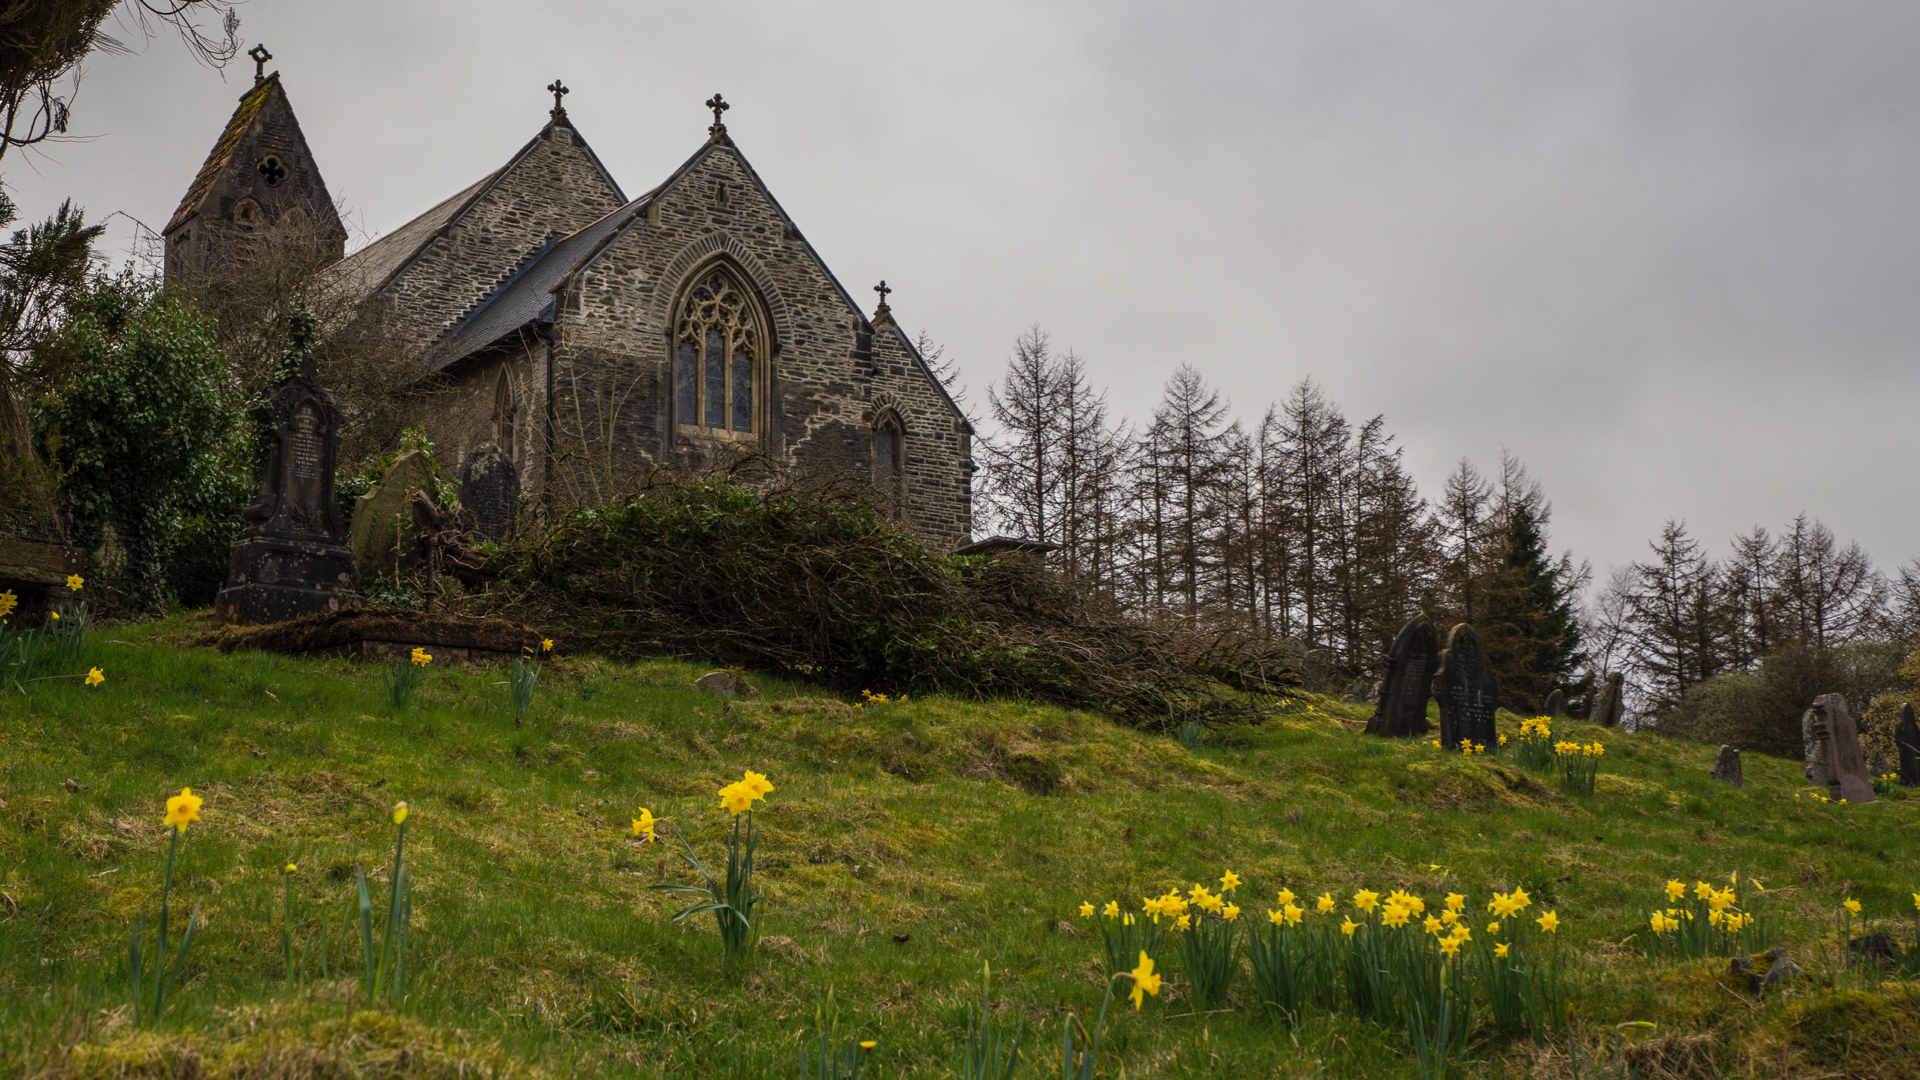 The church is perched up on quite a steep hill.